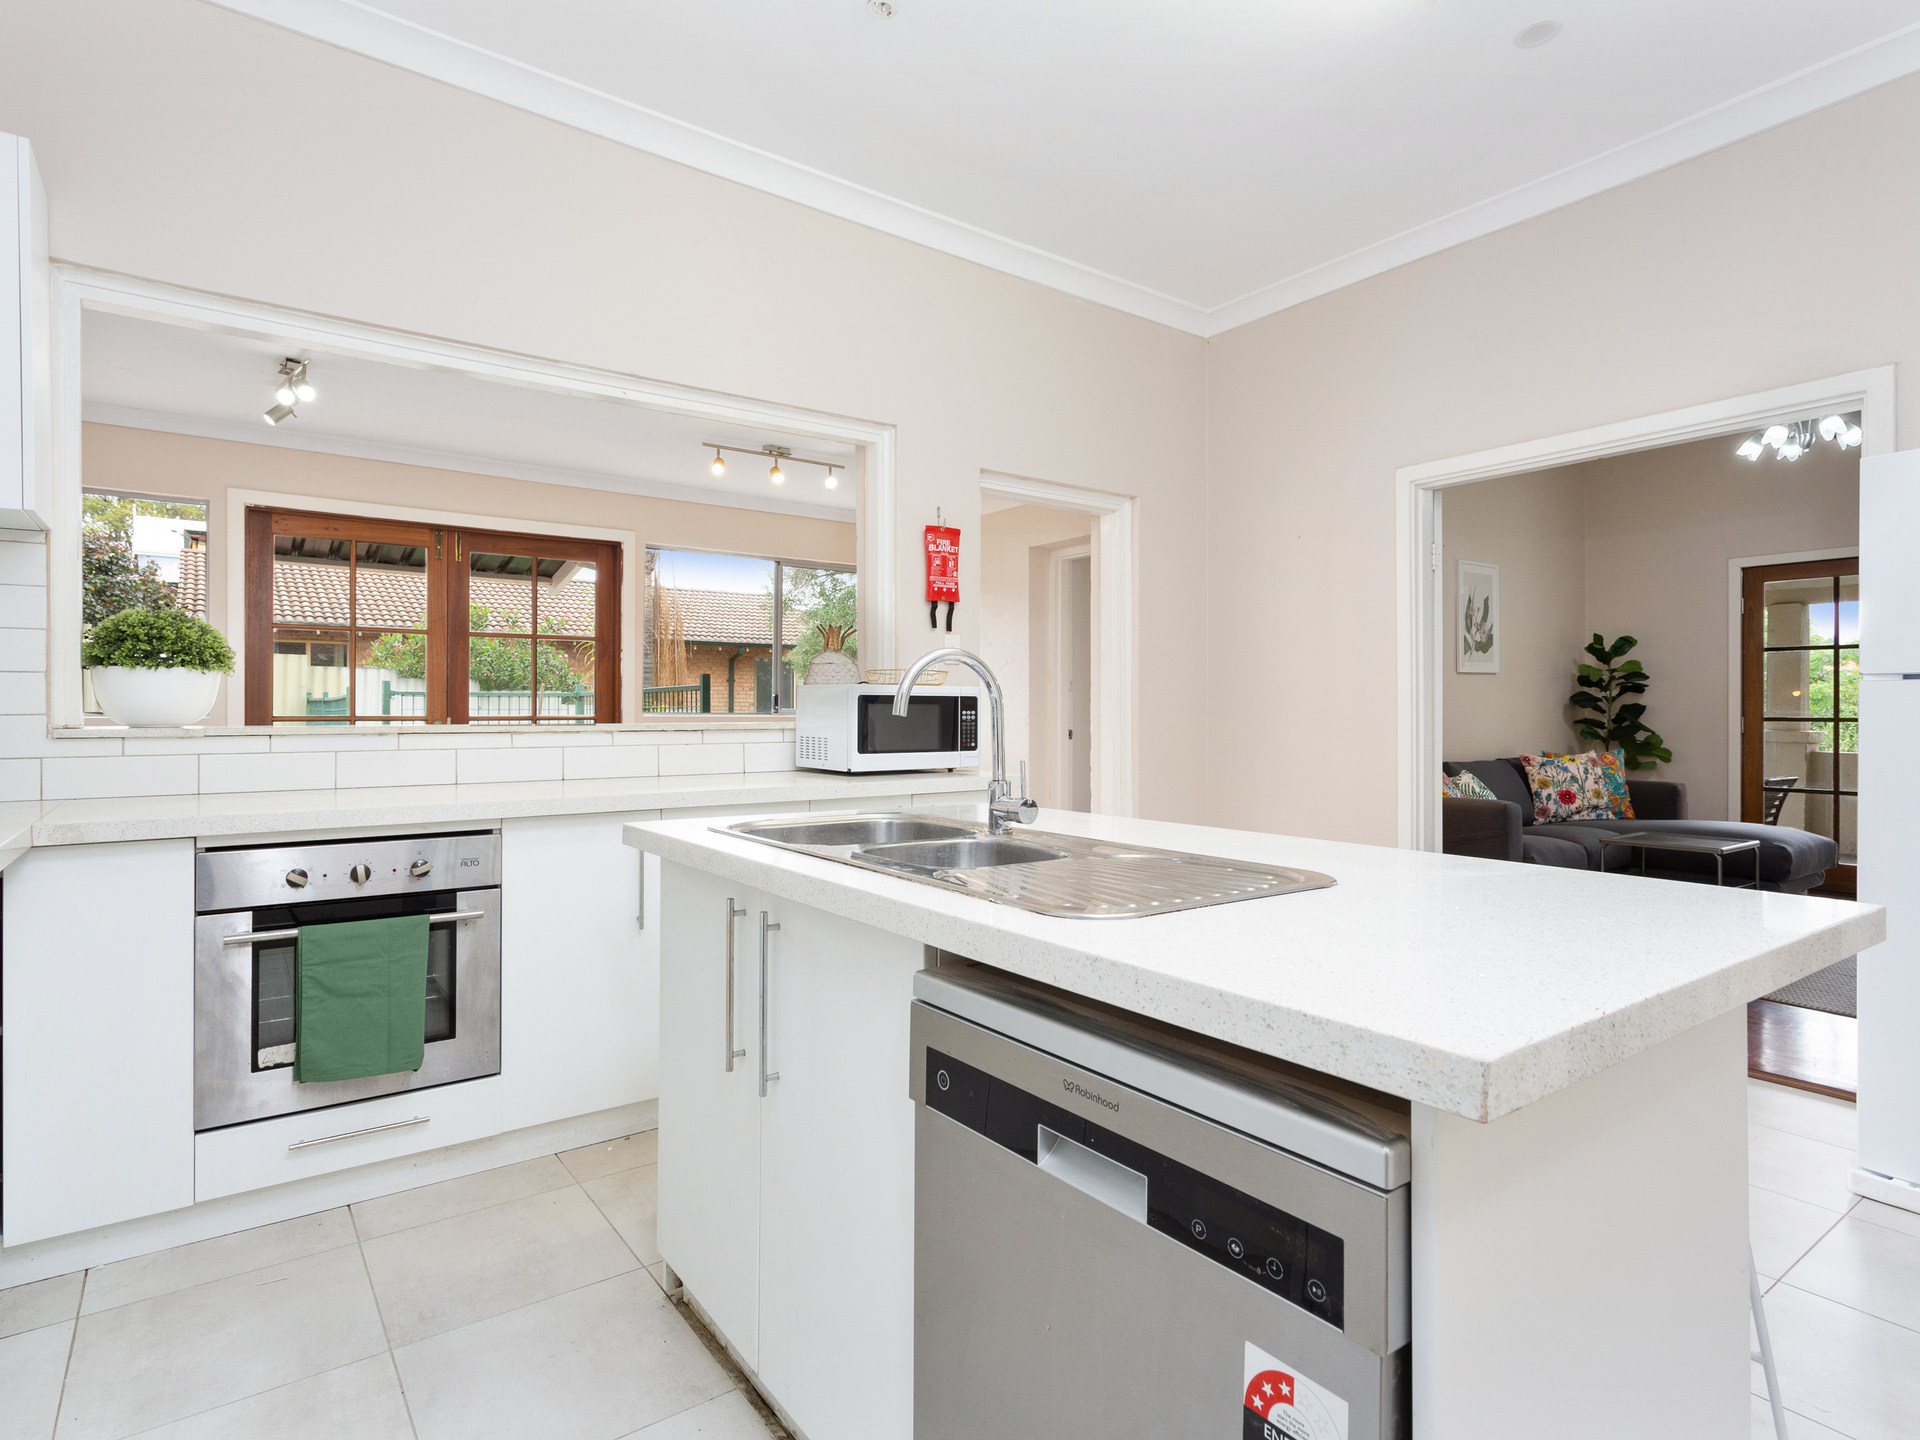 WEB 458 Guildford Road, Bayswater 24